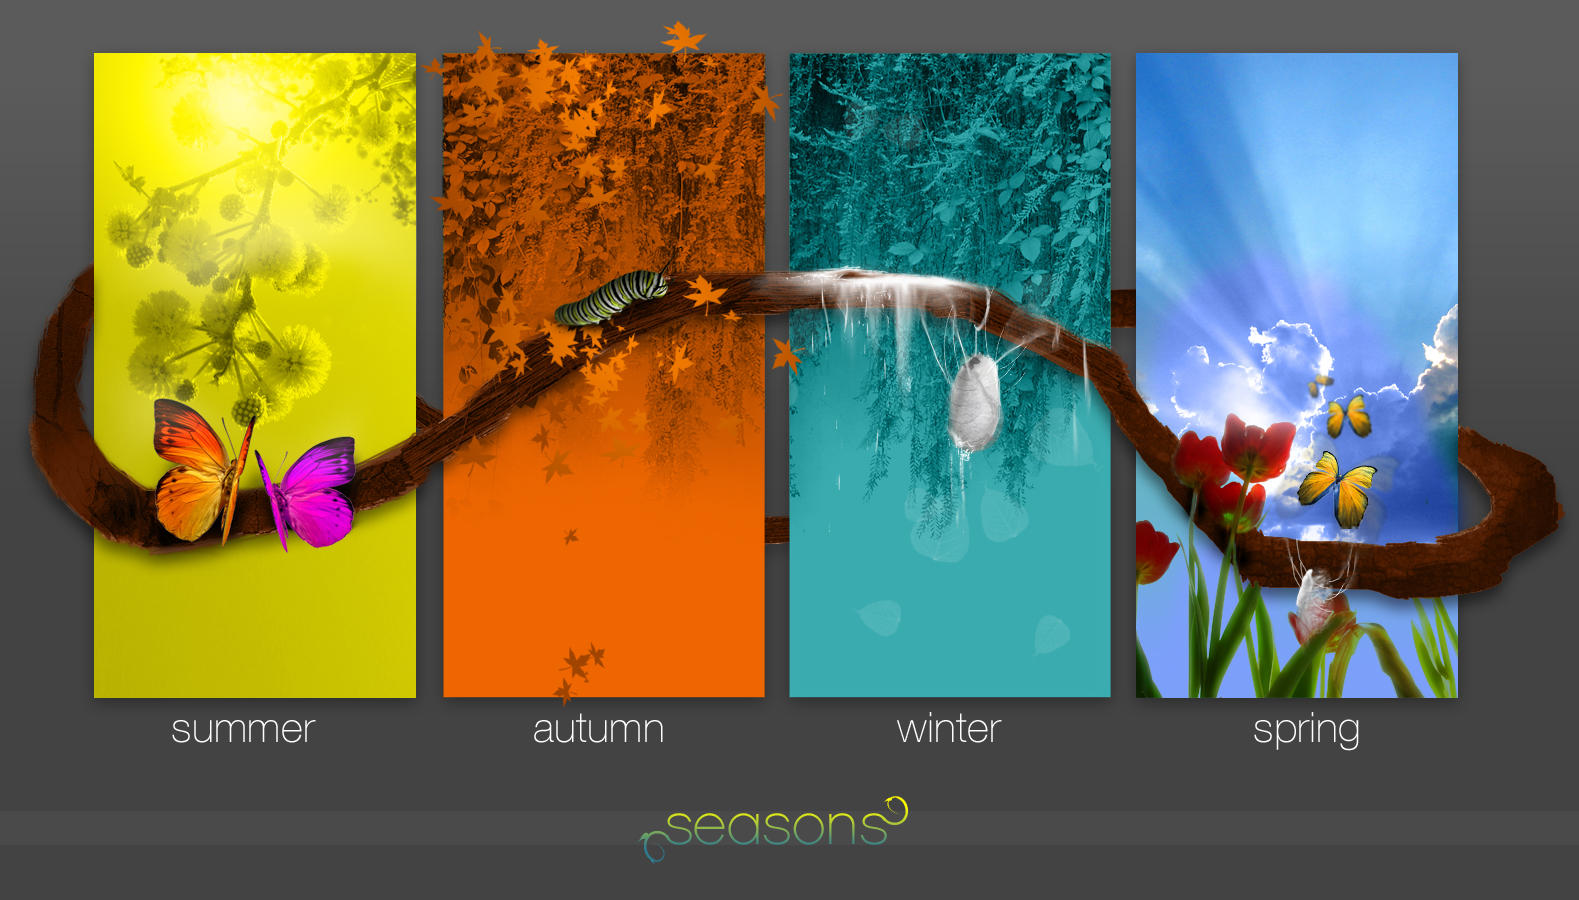 _Seasons by apothix